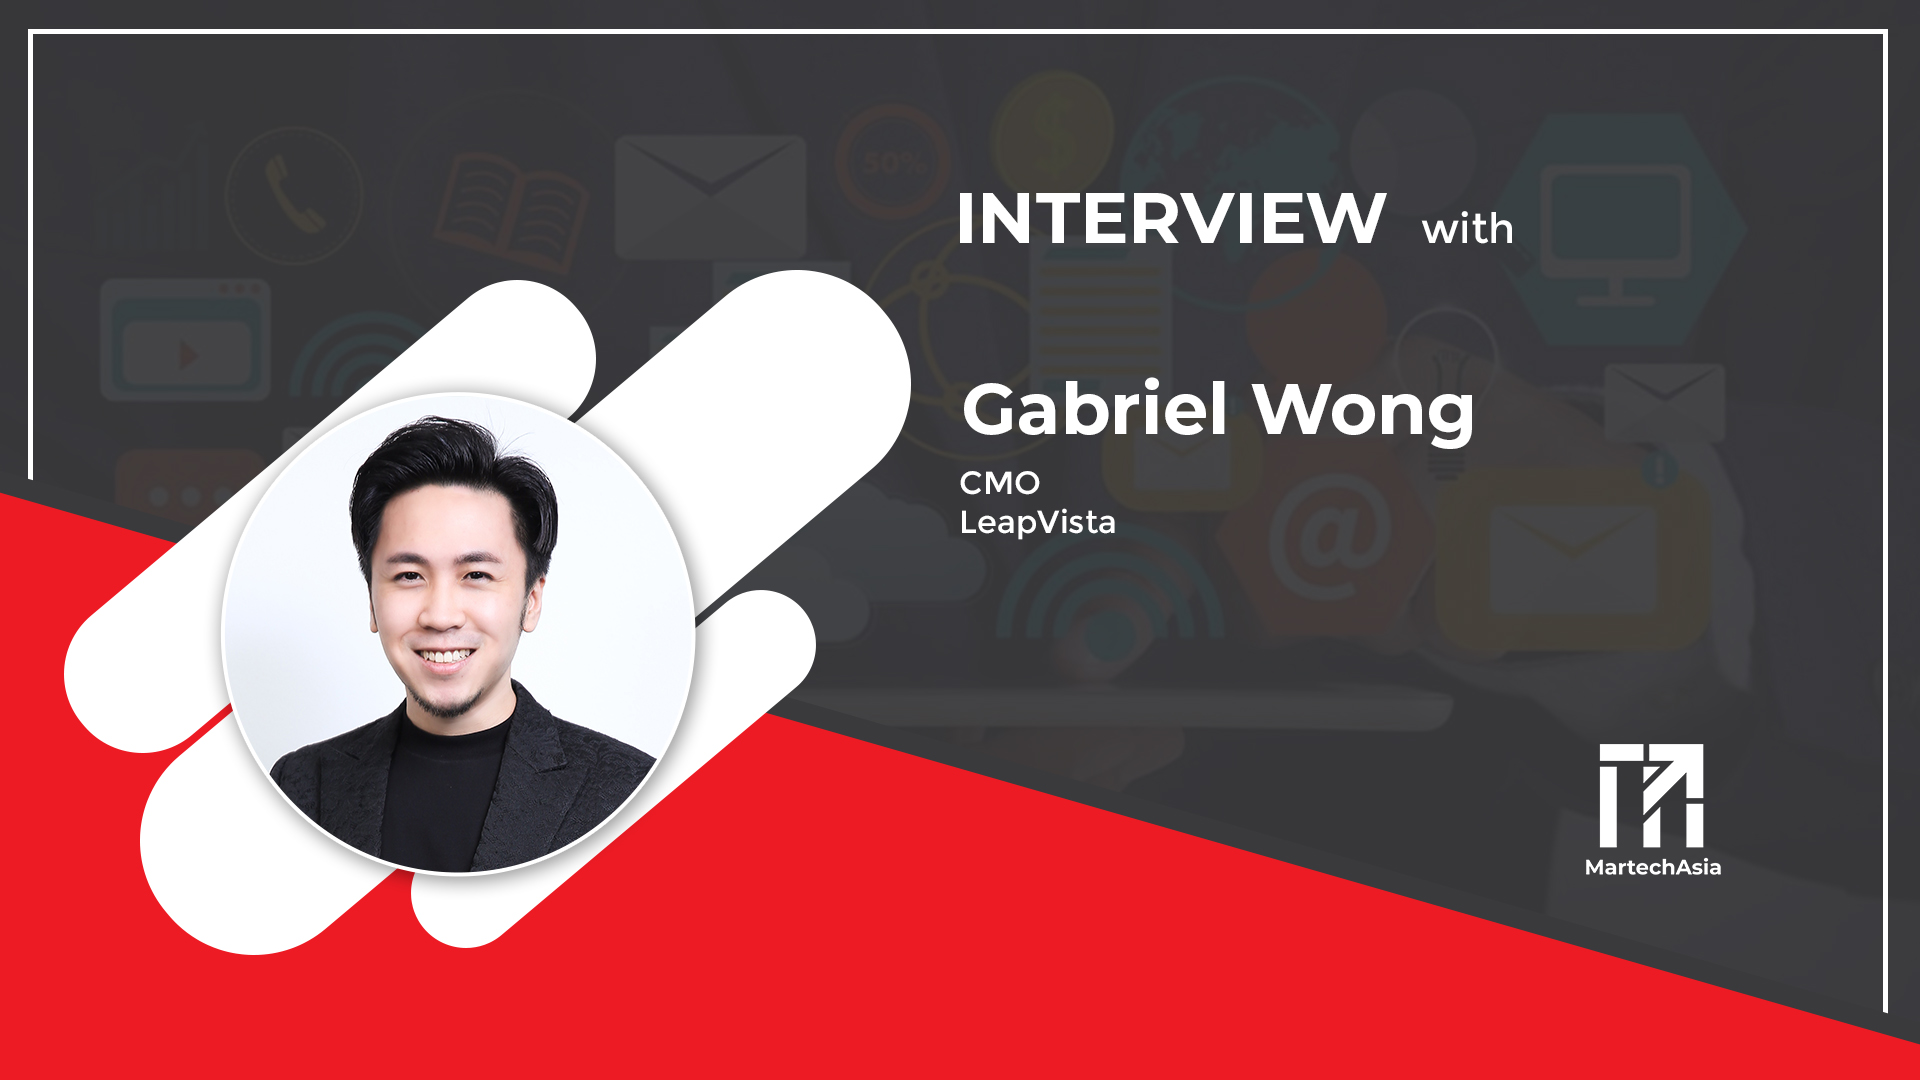 interview with Gabriel Wong about customer centric digital marketing